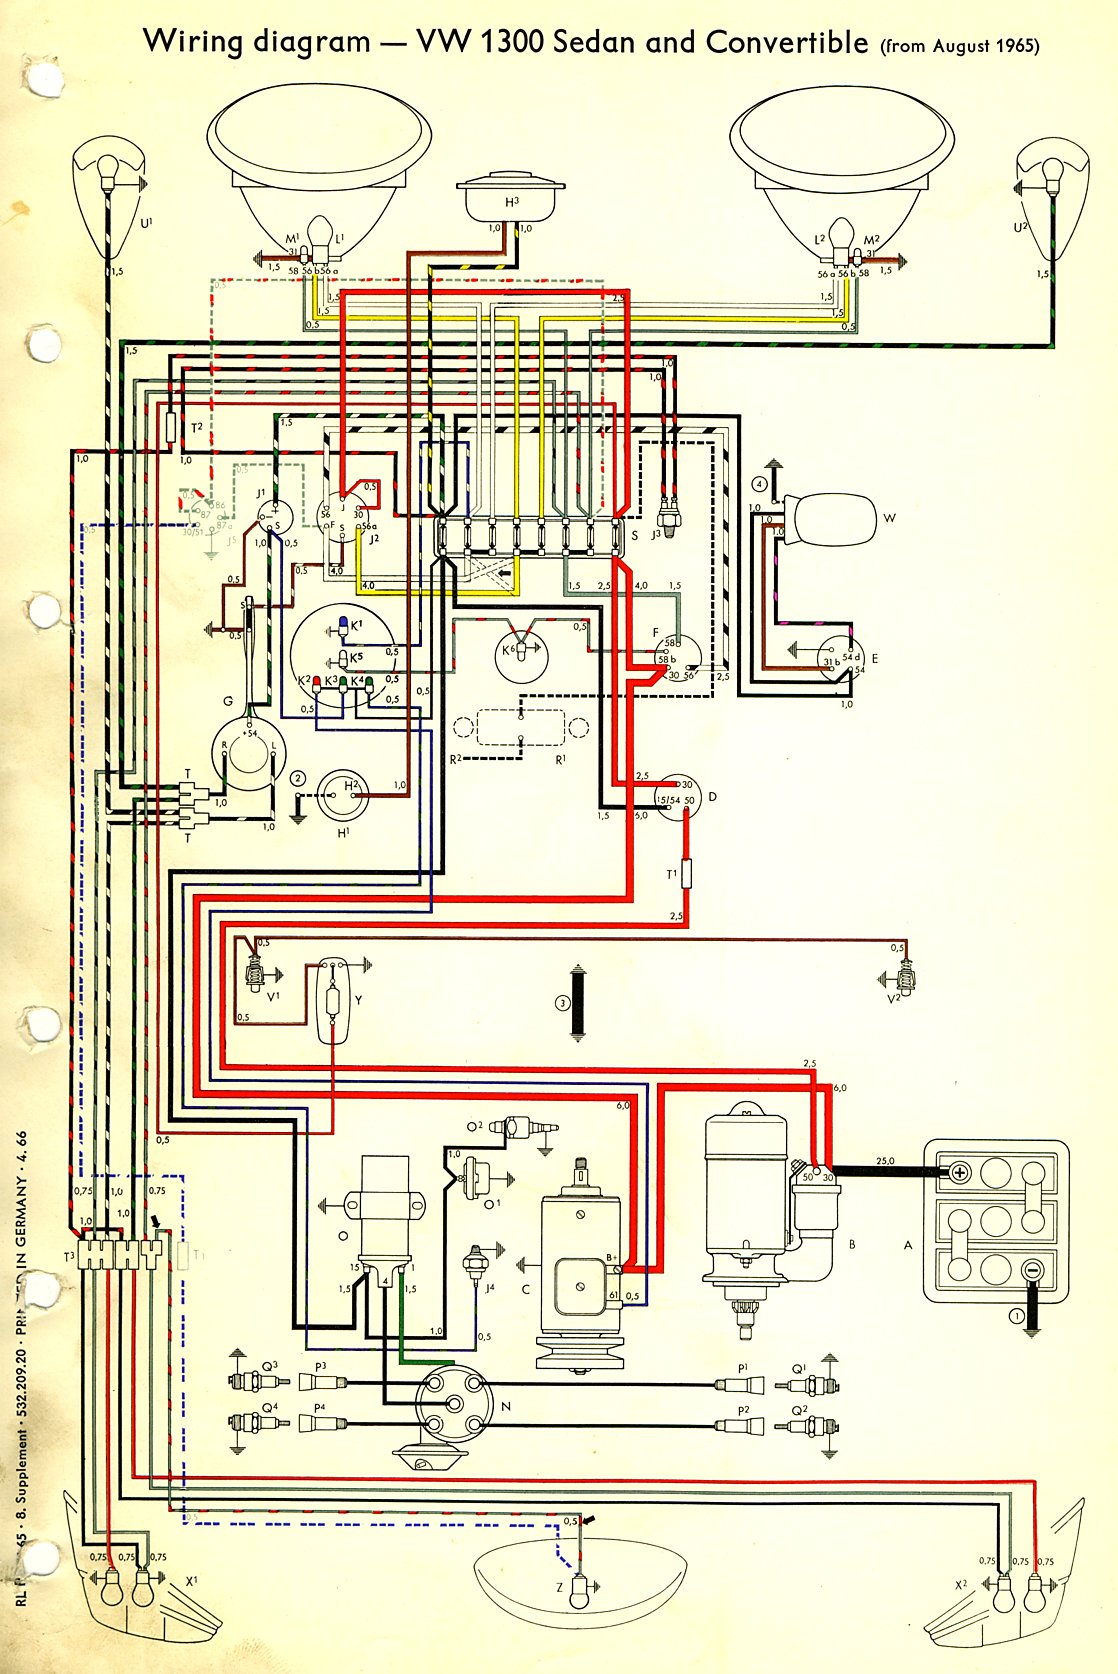 1968 vw bug wiring 68 vw bug wiring diagram